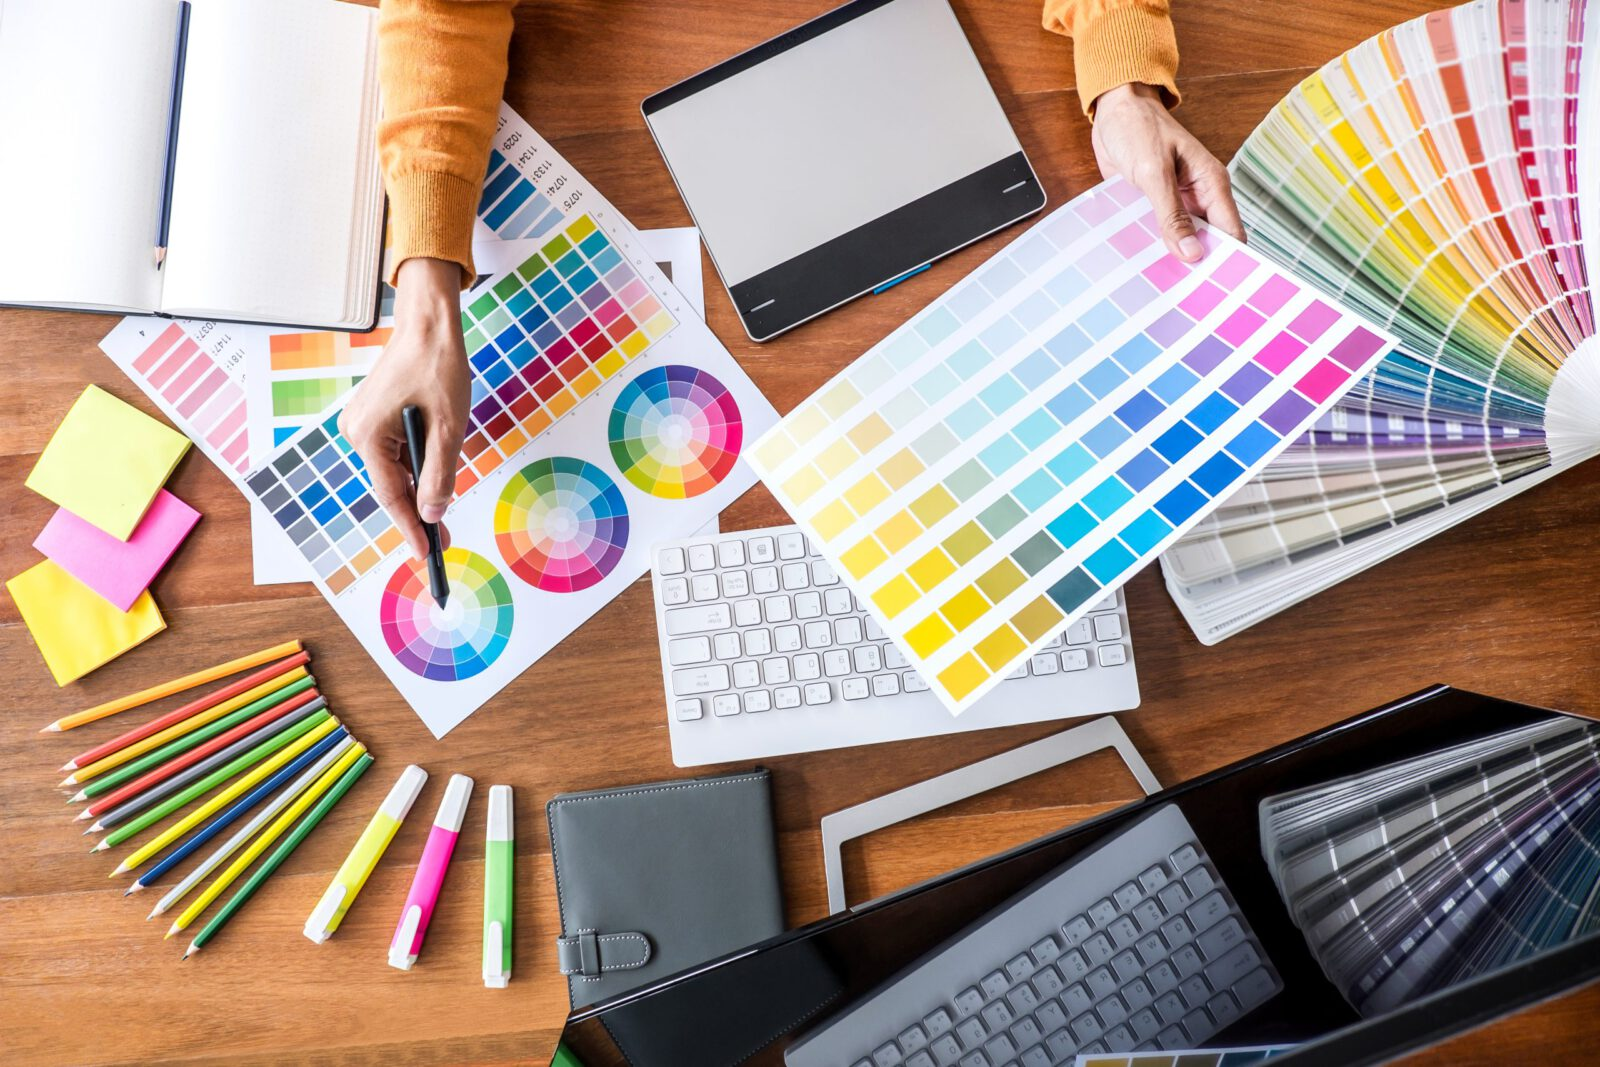 Image of female creative graphic designer working on color selection and drawing on graphics tablet at workplace with work tools and accessories, top view workspace.